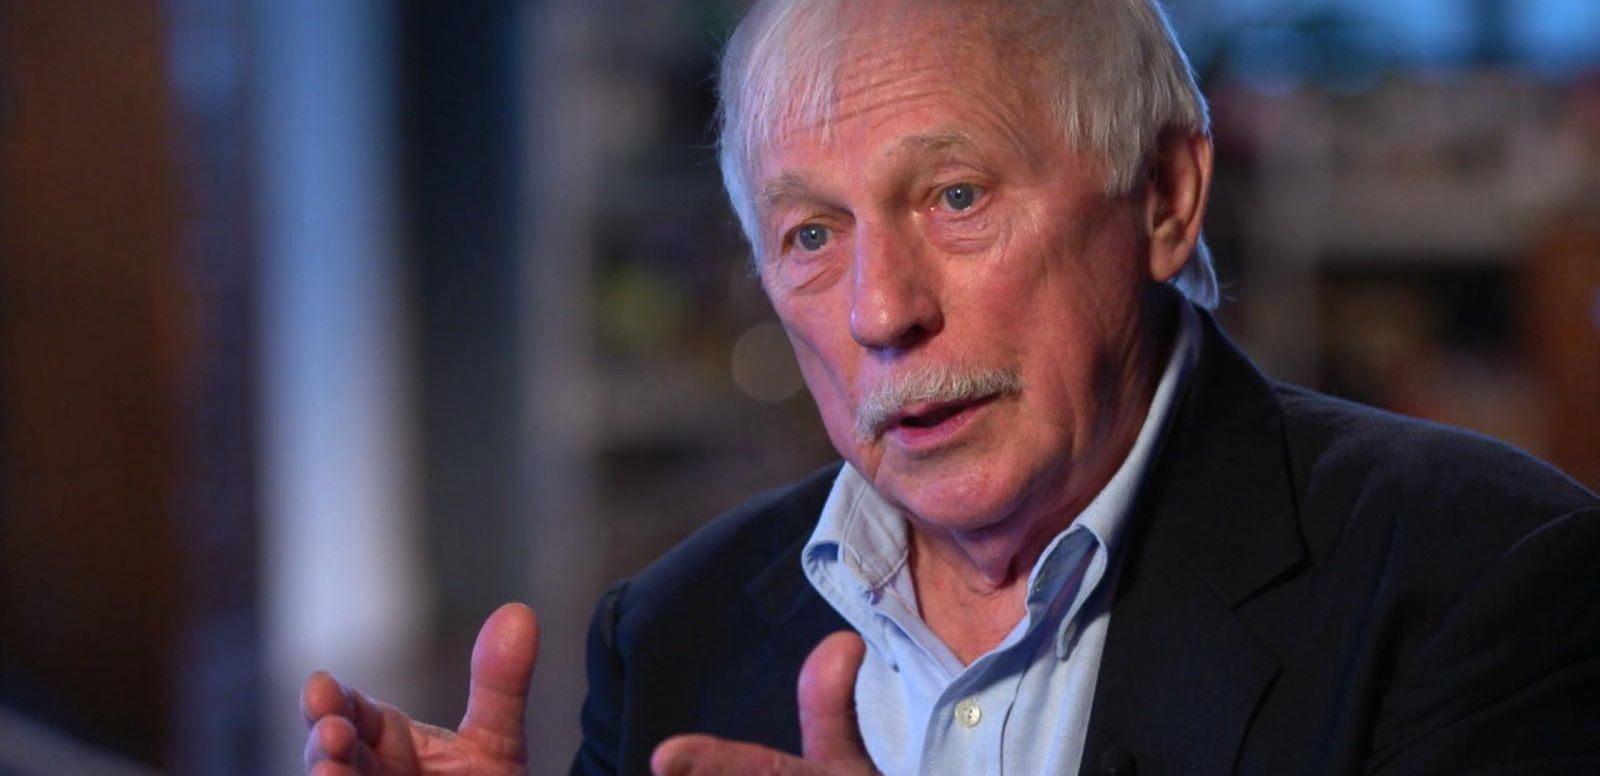 VIDEO: Scientology Leader's Father Speaks Out